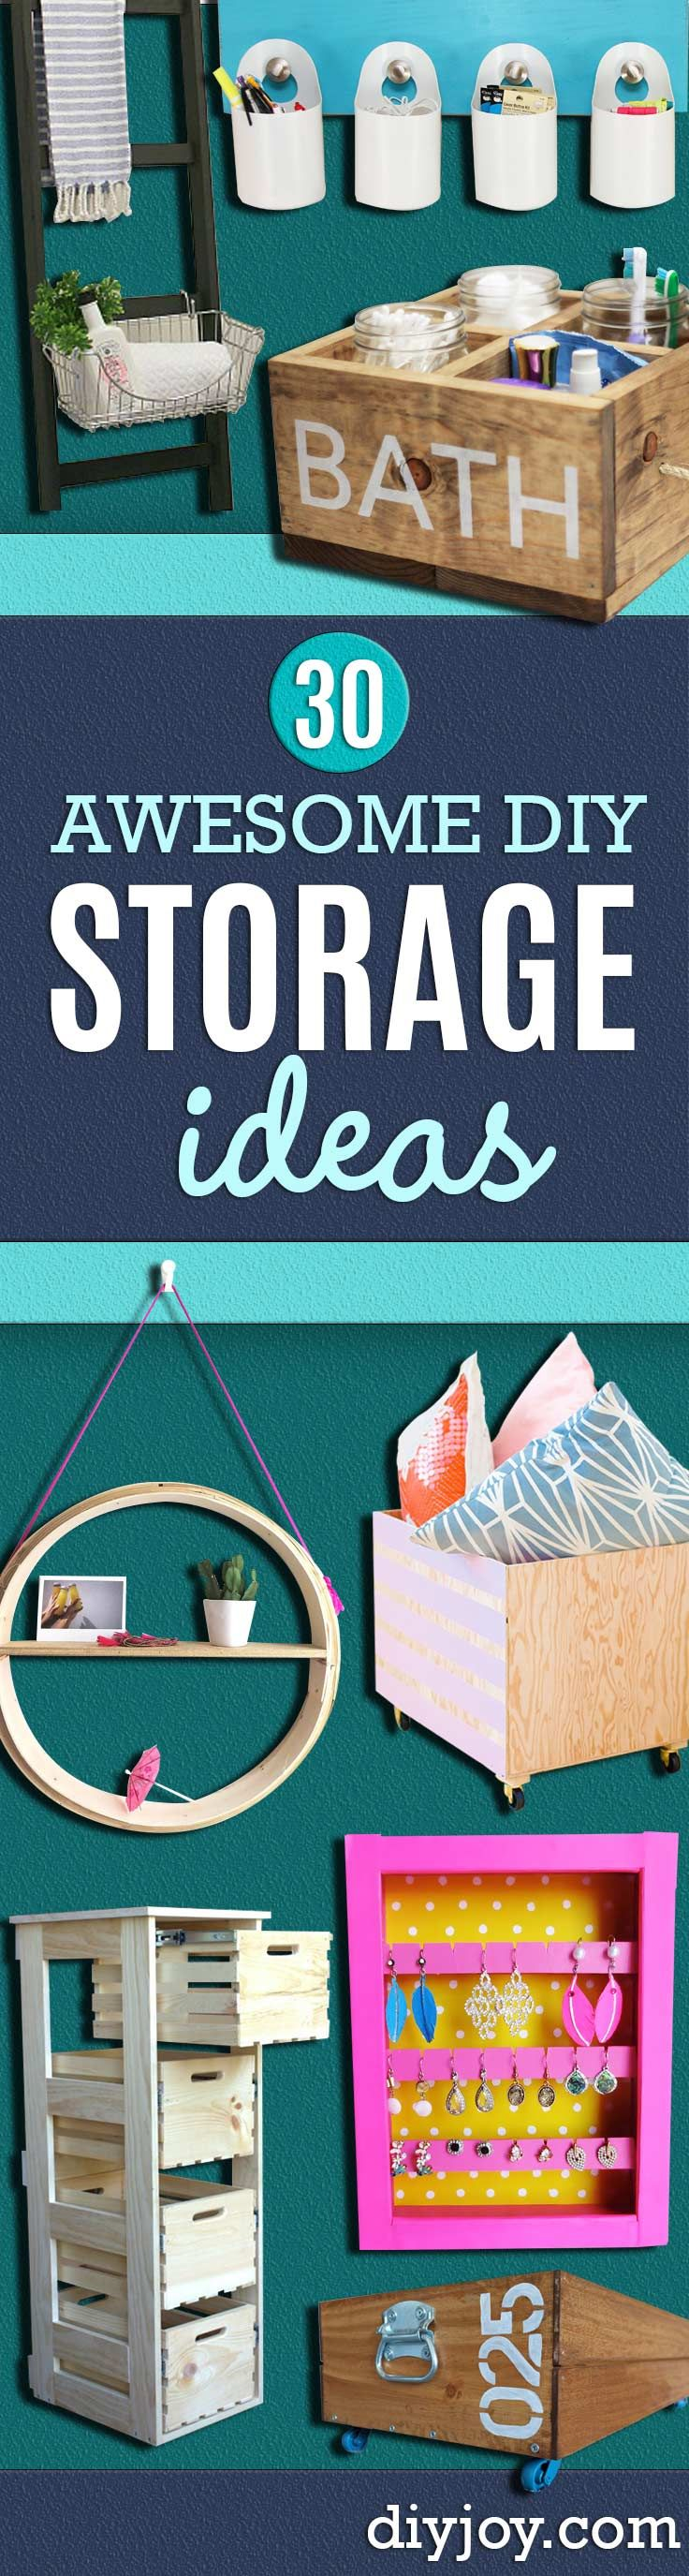 30 awesome diy storage ideas organizadores con mama y diy storage ideas home decor and organizing projects for the bedroom bathroom living solutioingenieria